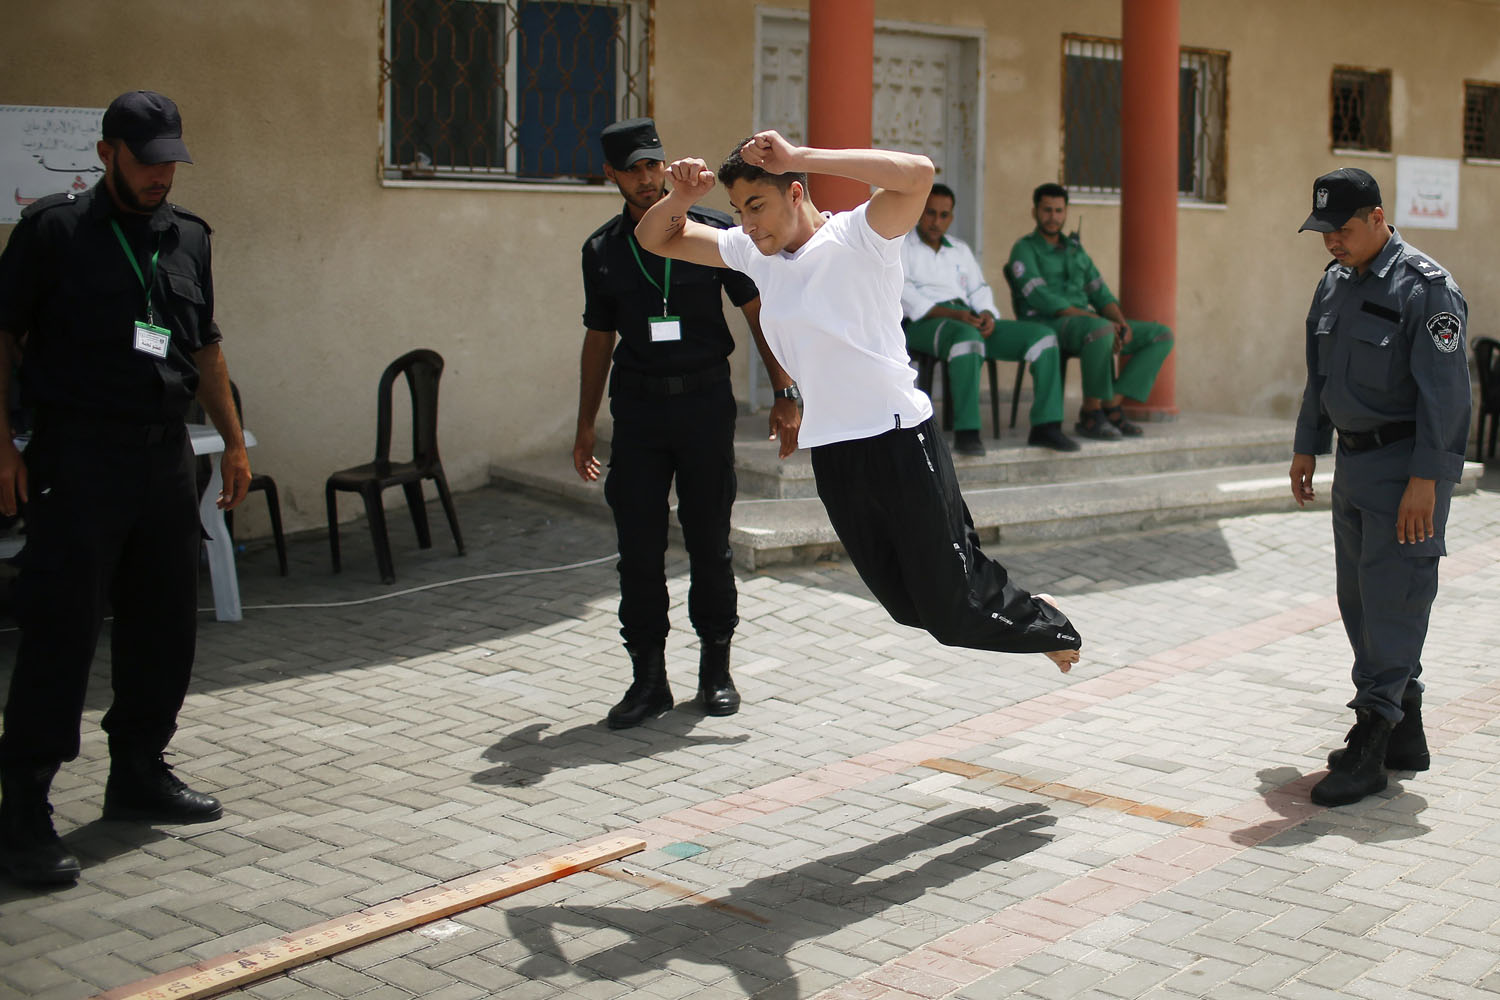 June 3, 2013. A Palestinian applicant undergoes a physical examination at a Hamas recruitment center in Gaza City.